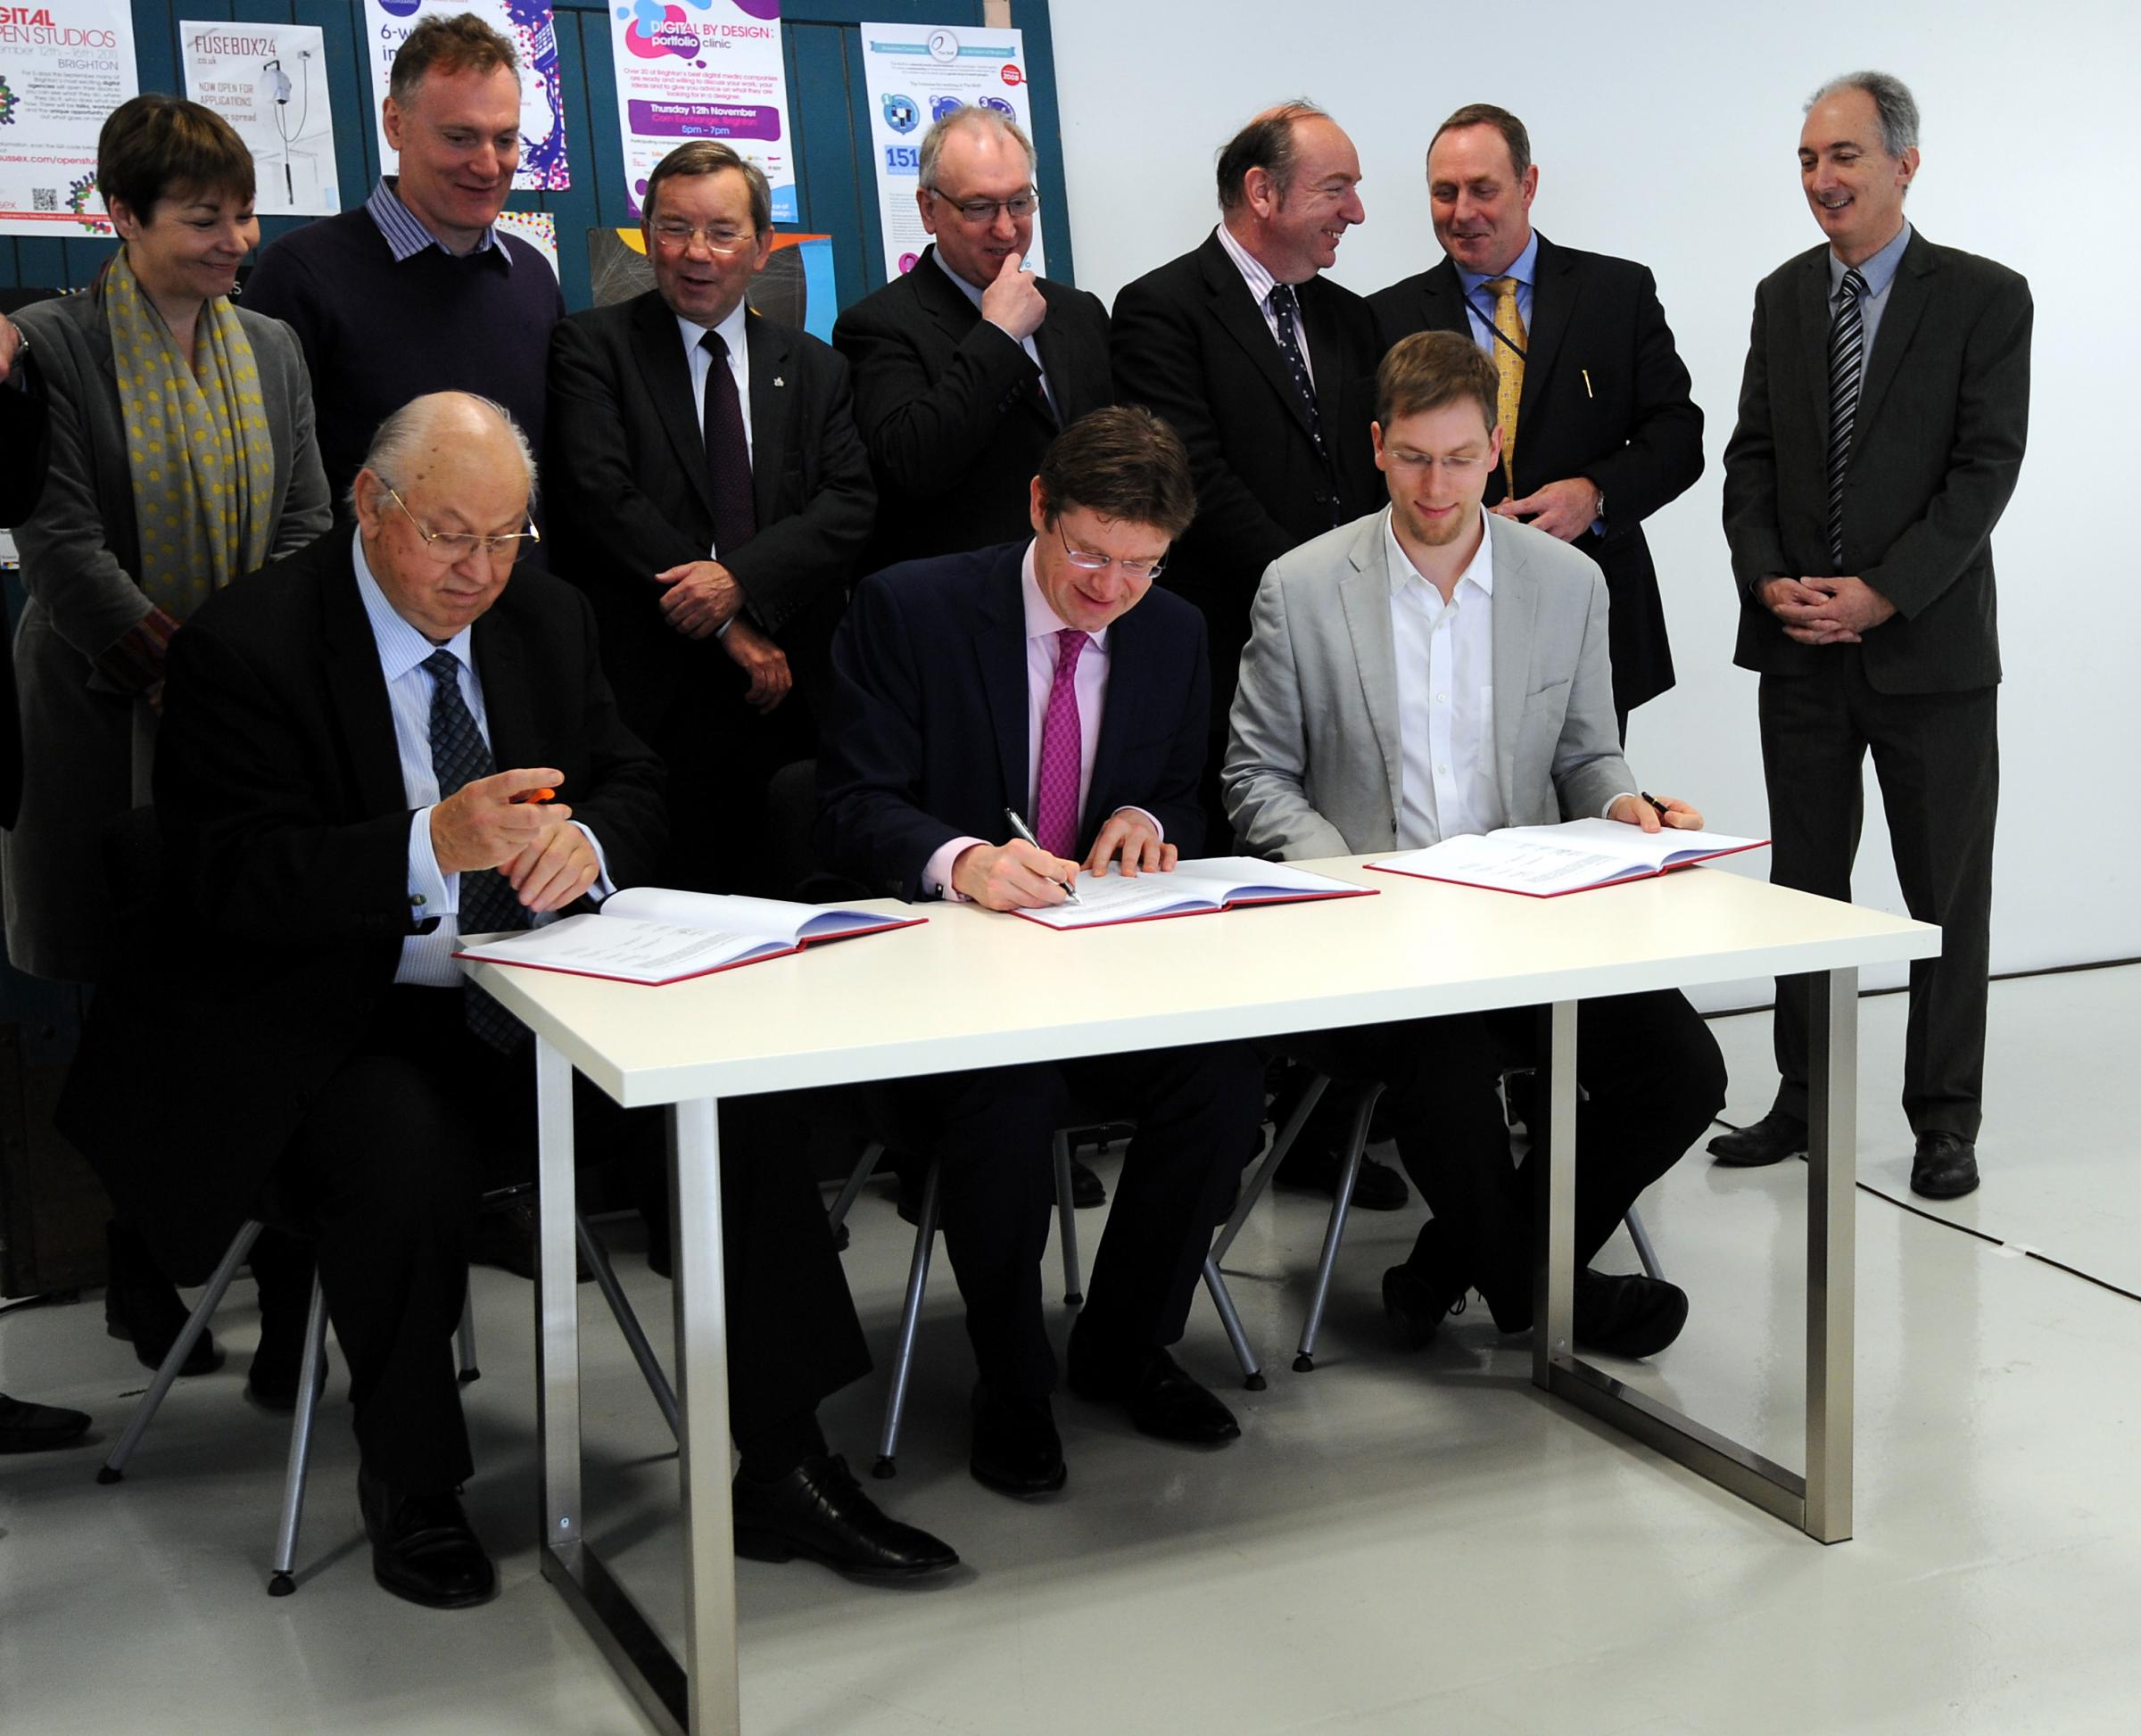 Signing of the City Deal - Minister for Cities Greg Clark (seated centre) with Brighton council leader Jason kitcat (right) and John Peel chair of the coast to capital local enterprise partnership (left) in the front row